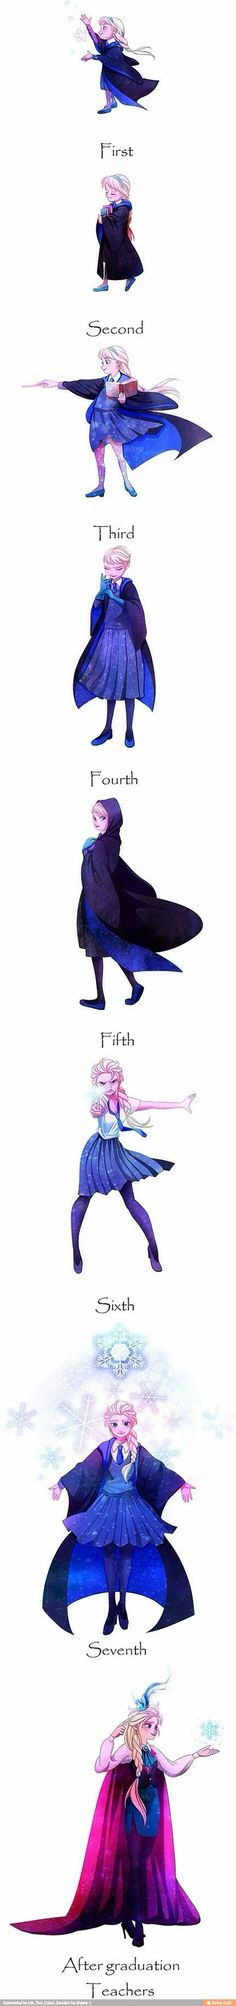 Elsa at Hogwarts! I ADORE THIS! By the way whoever did these can you make one of Jack Frost at Hogwarts? Disney Pixar, Walt Disney, Disney Memes, Disney And Dreamworks, Disney Magic, Disney Frozen, Disney Art, Disney Characters, Funny Disney